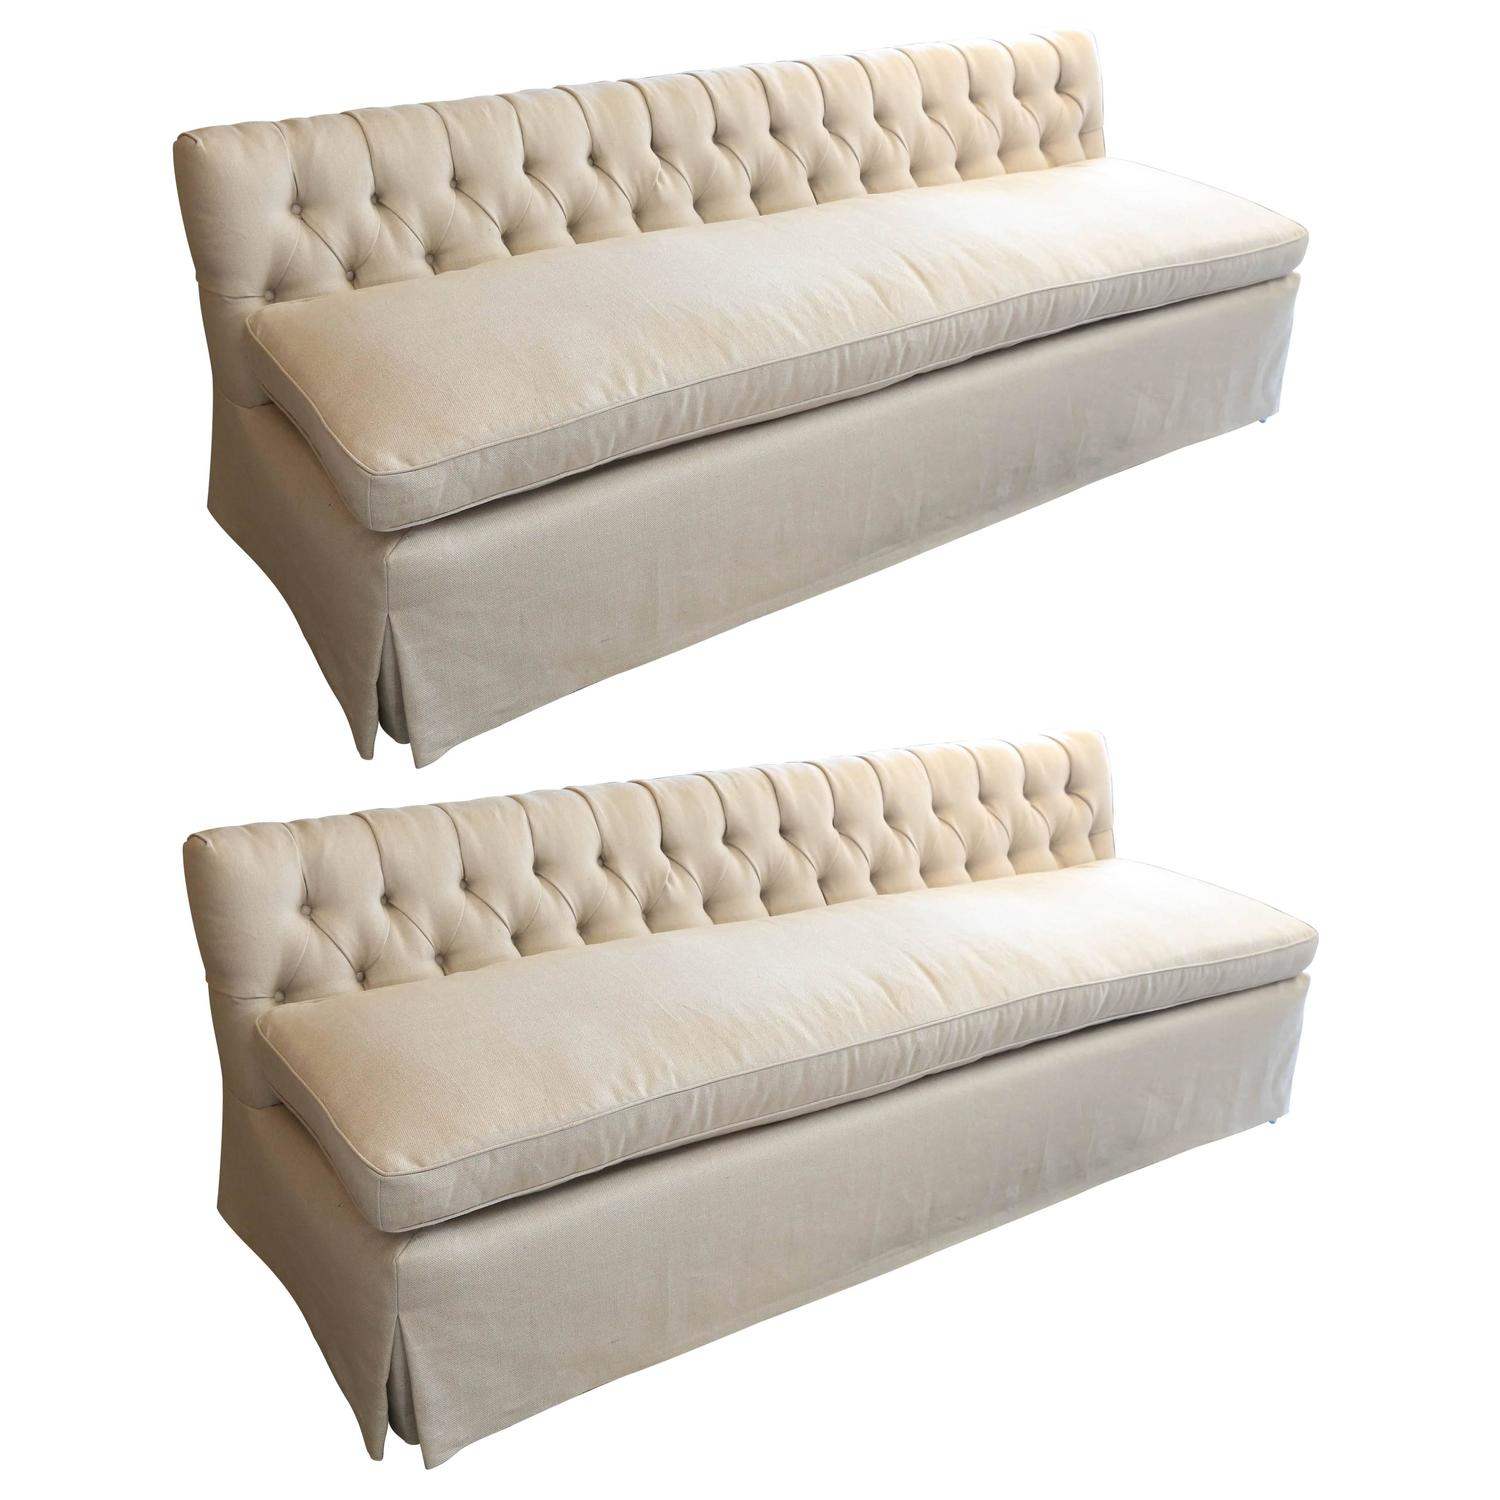 pair of vintage low armless sofa at stdibs -